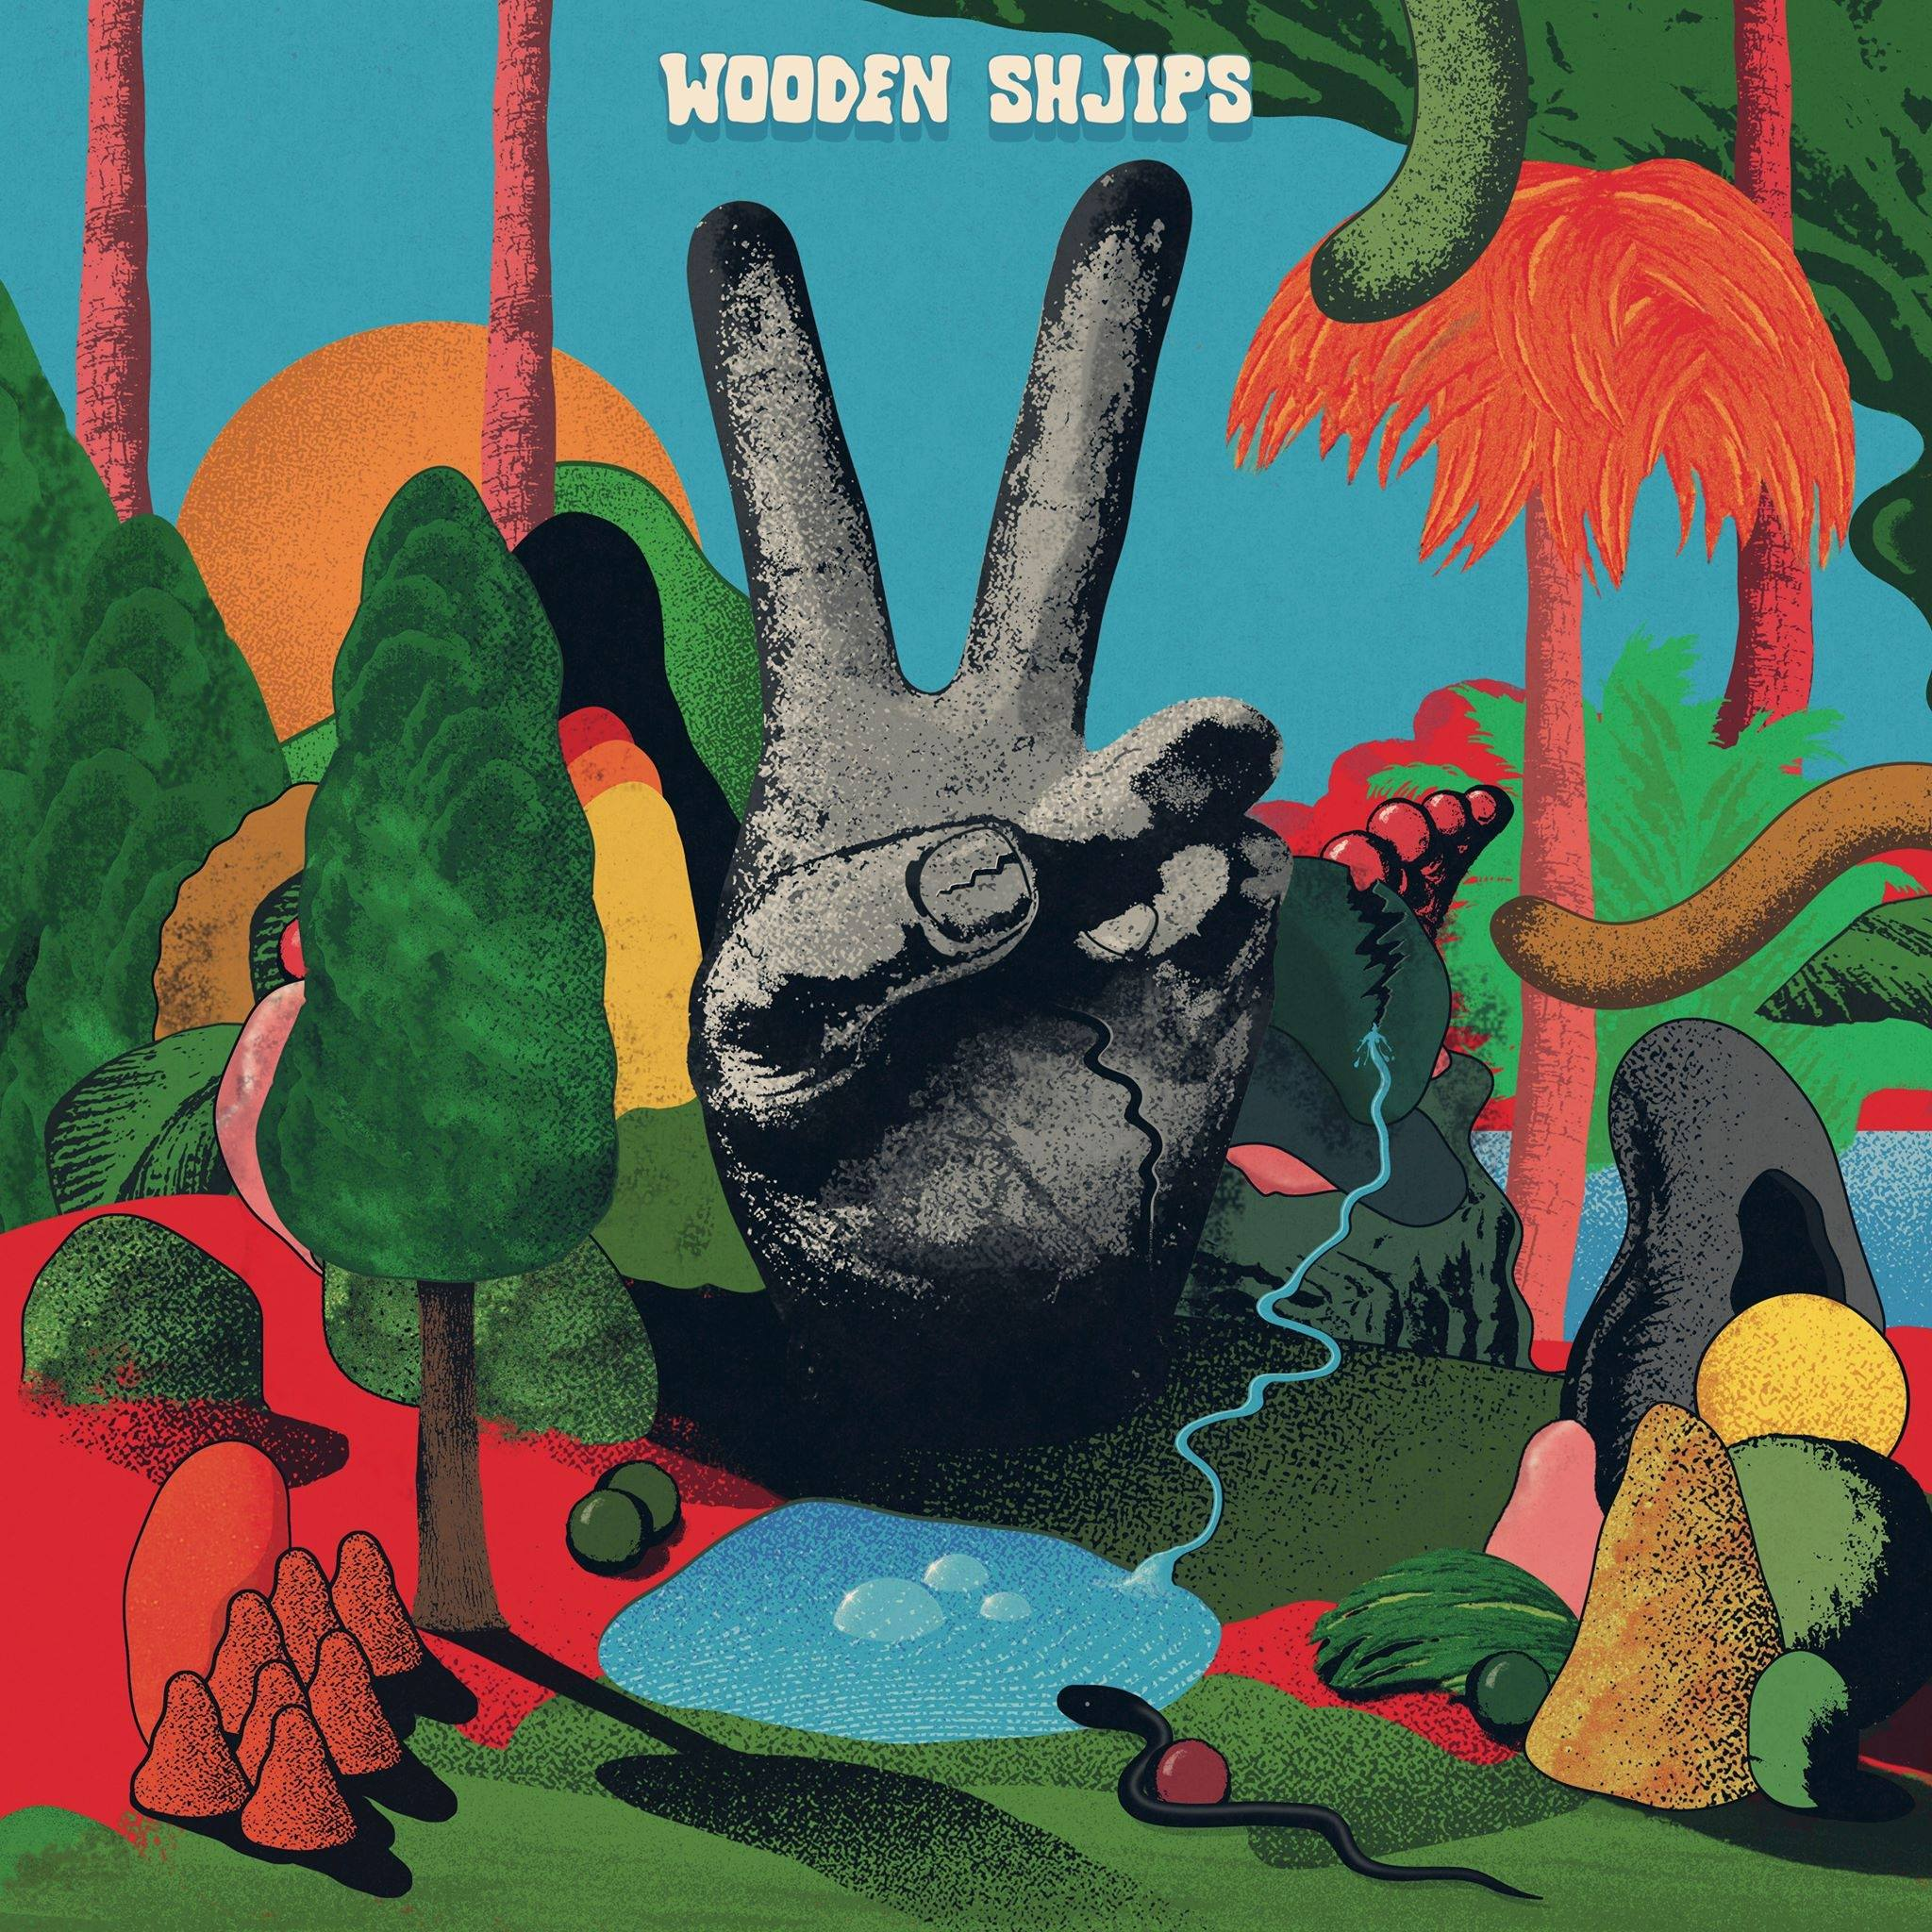 Wooden Shjips prelude new LP with desert mirage, 'Staring At The Sun'